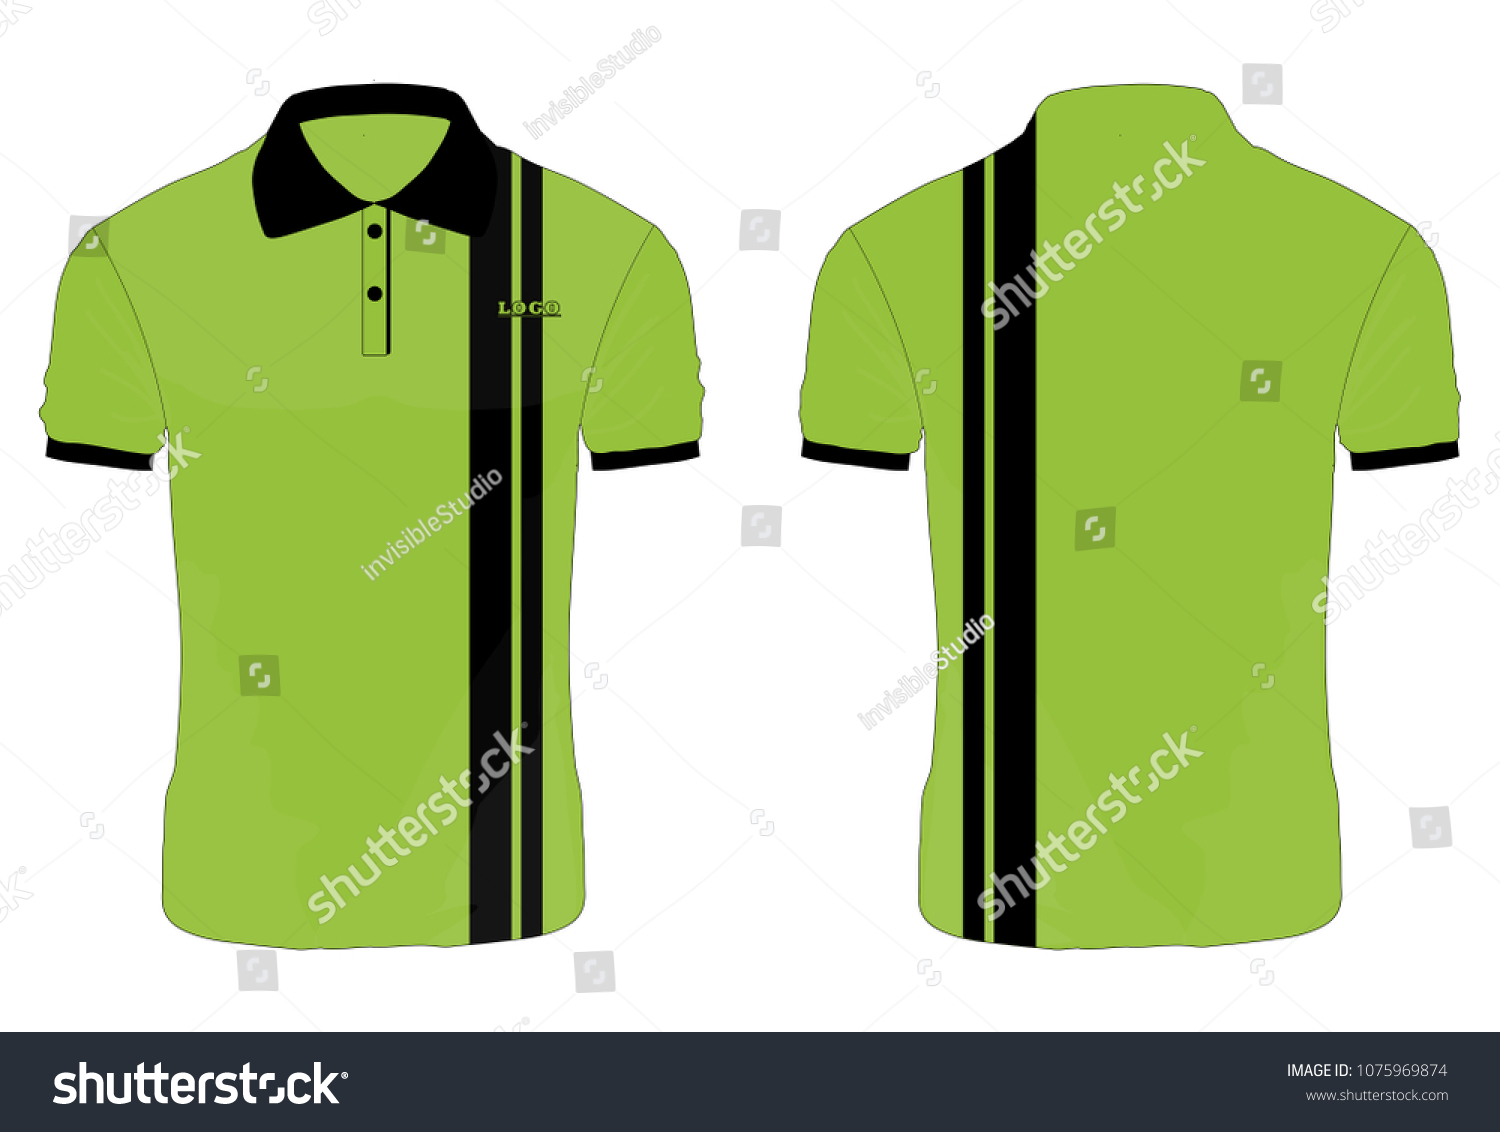 T-shirt Polo green and black template for design on white background.  Vector illustration eps 10.green Polo shirt 010fefd26f14